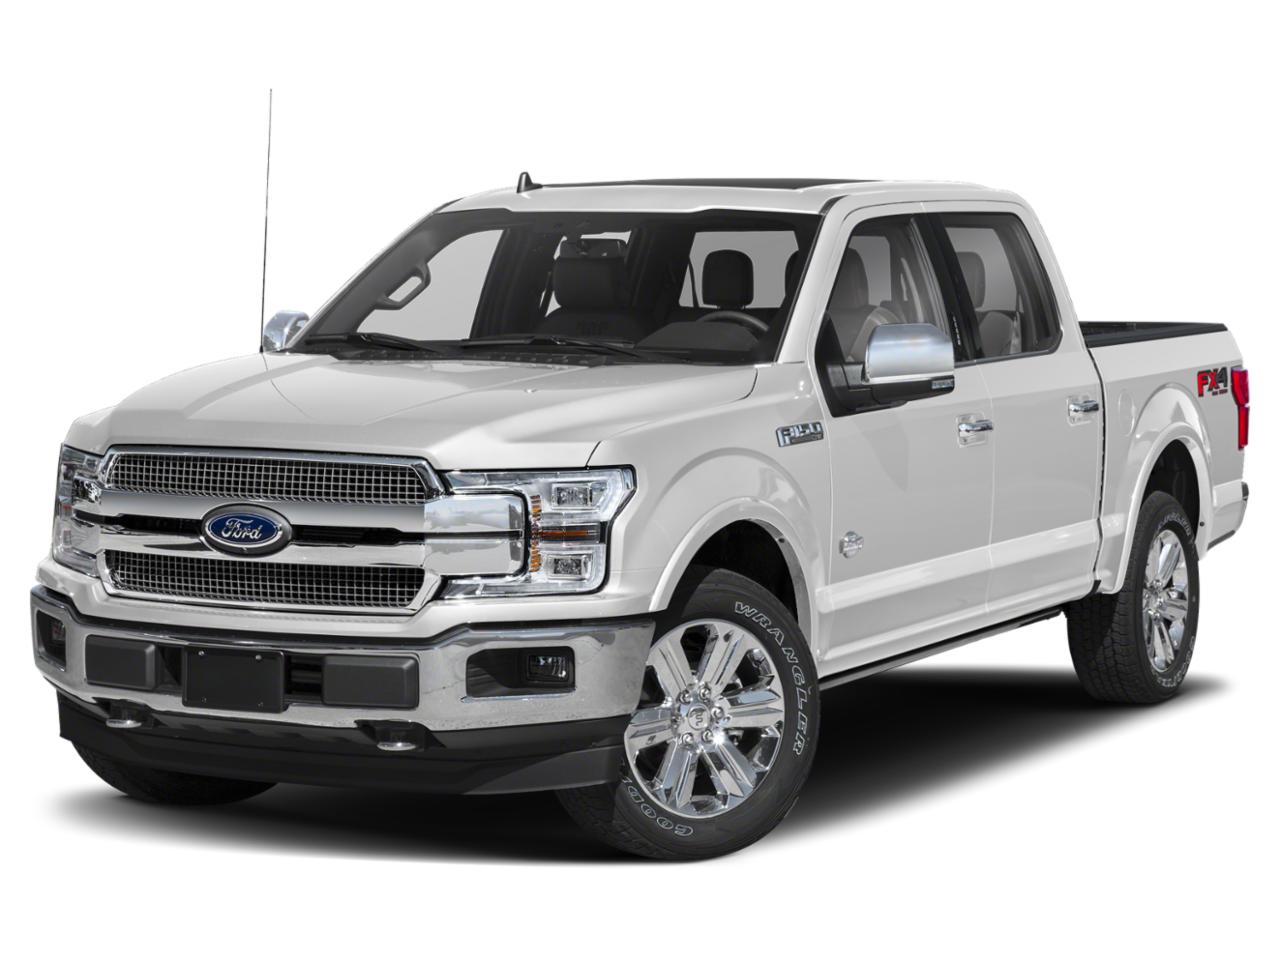 2020 Ford F-150 KING RANCH Crew Cab Pickup Slide